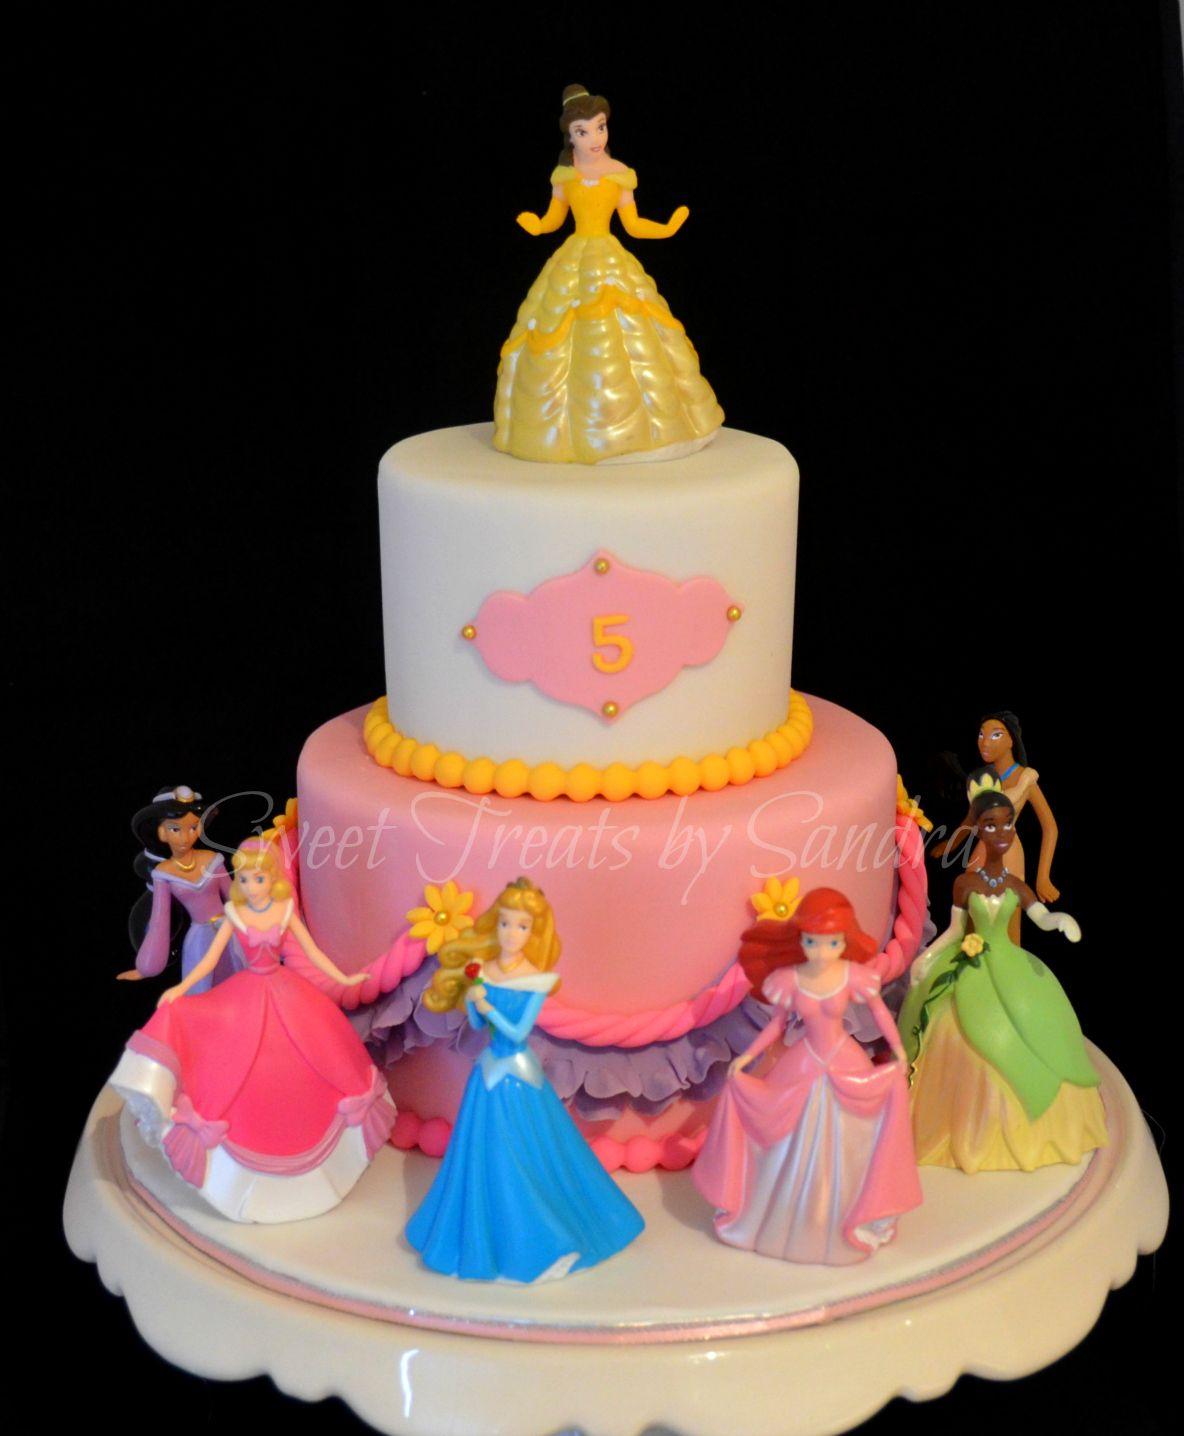 Disney Princess Cake For all your cake decorating supplies please